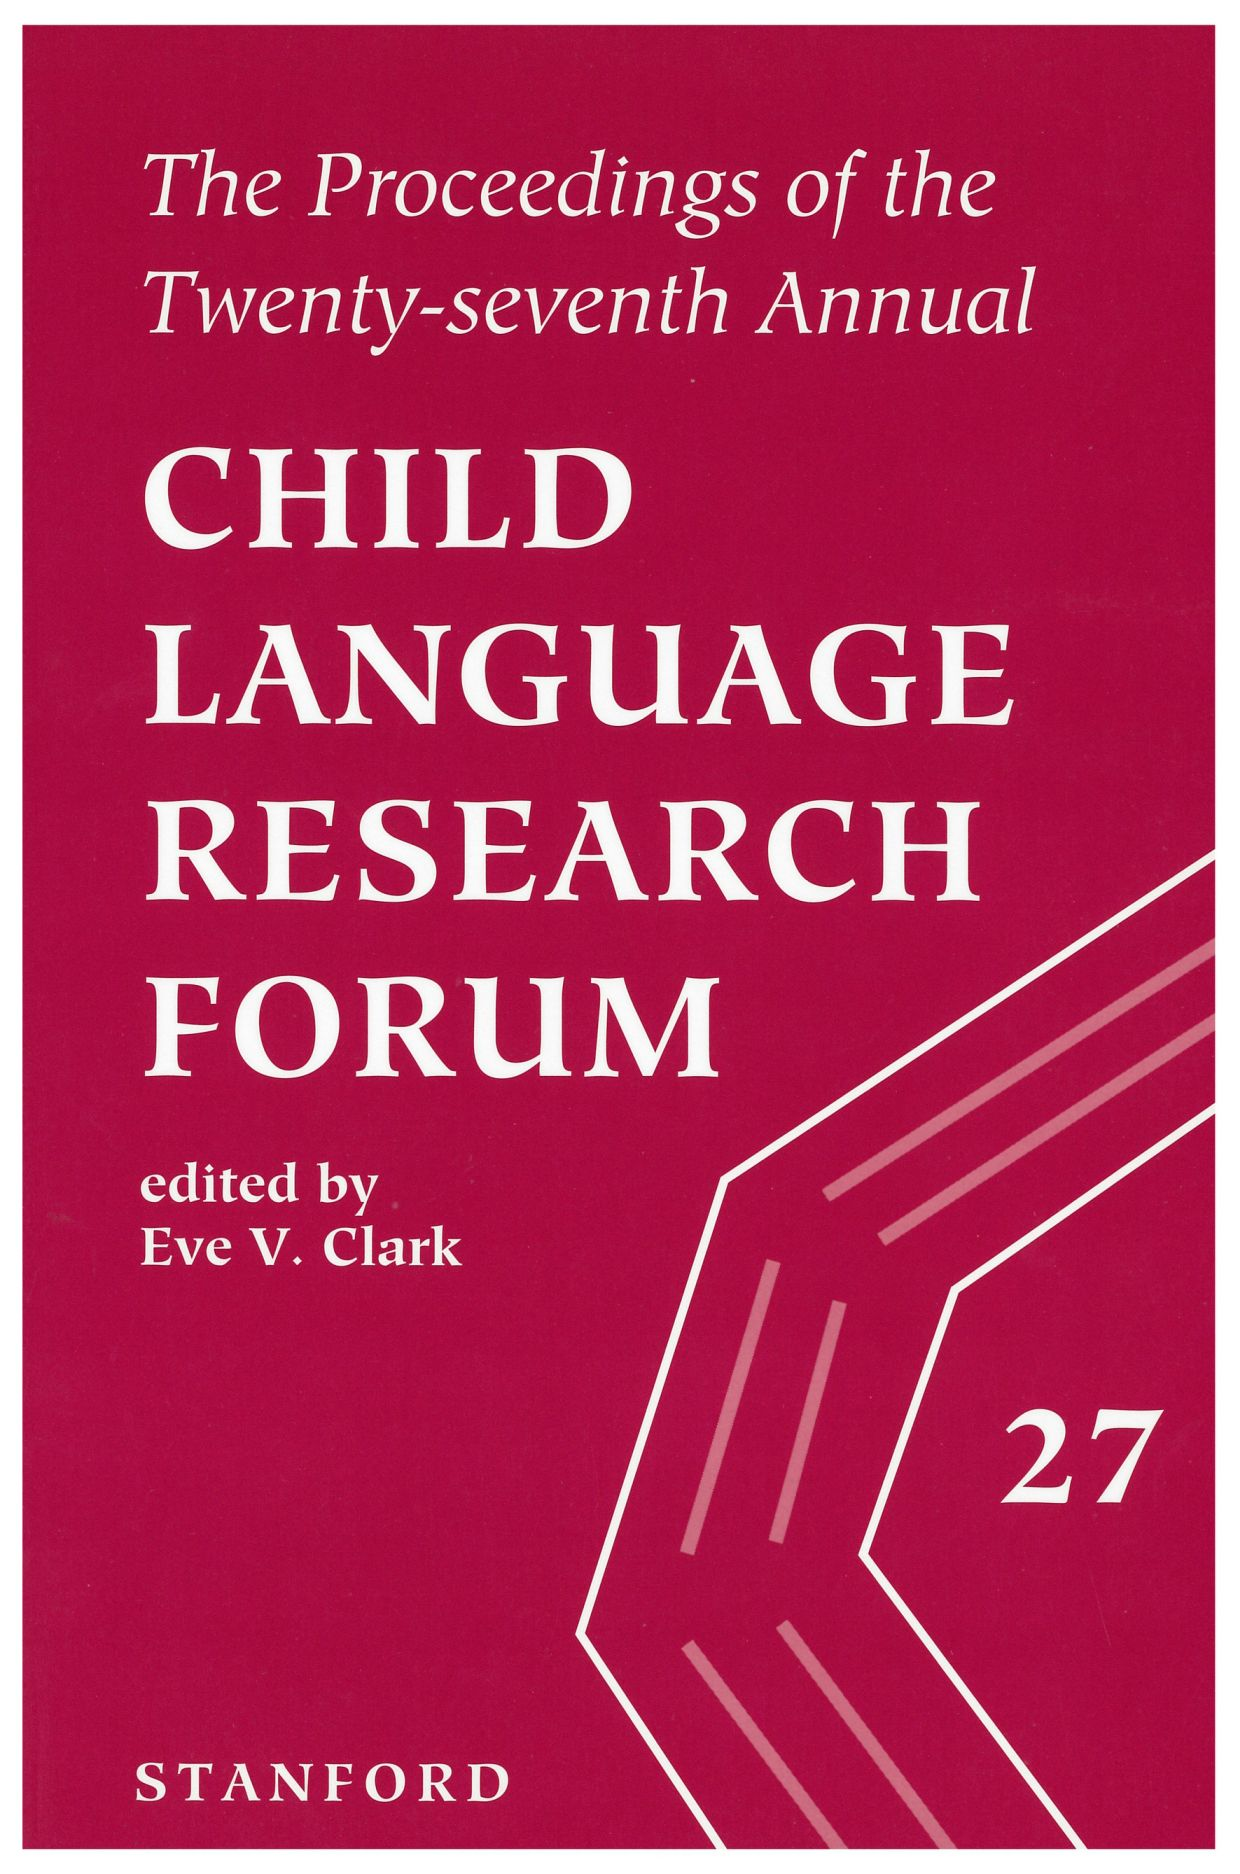 The Proceedings of the Twenty-Seventh Annual Child Language Research Forum